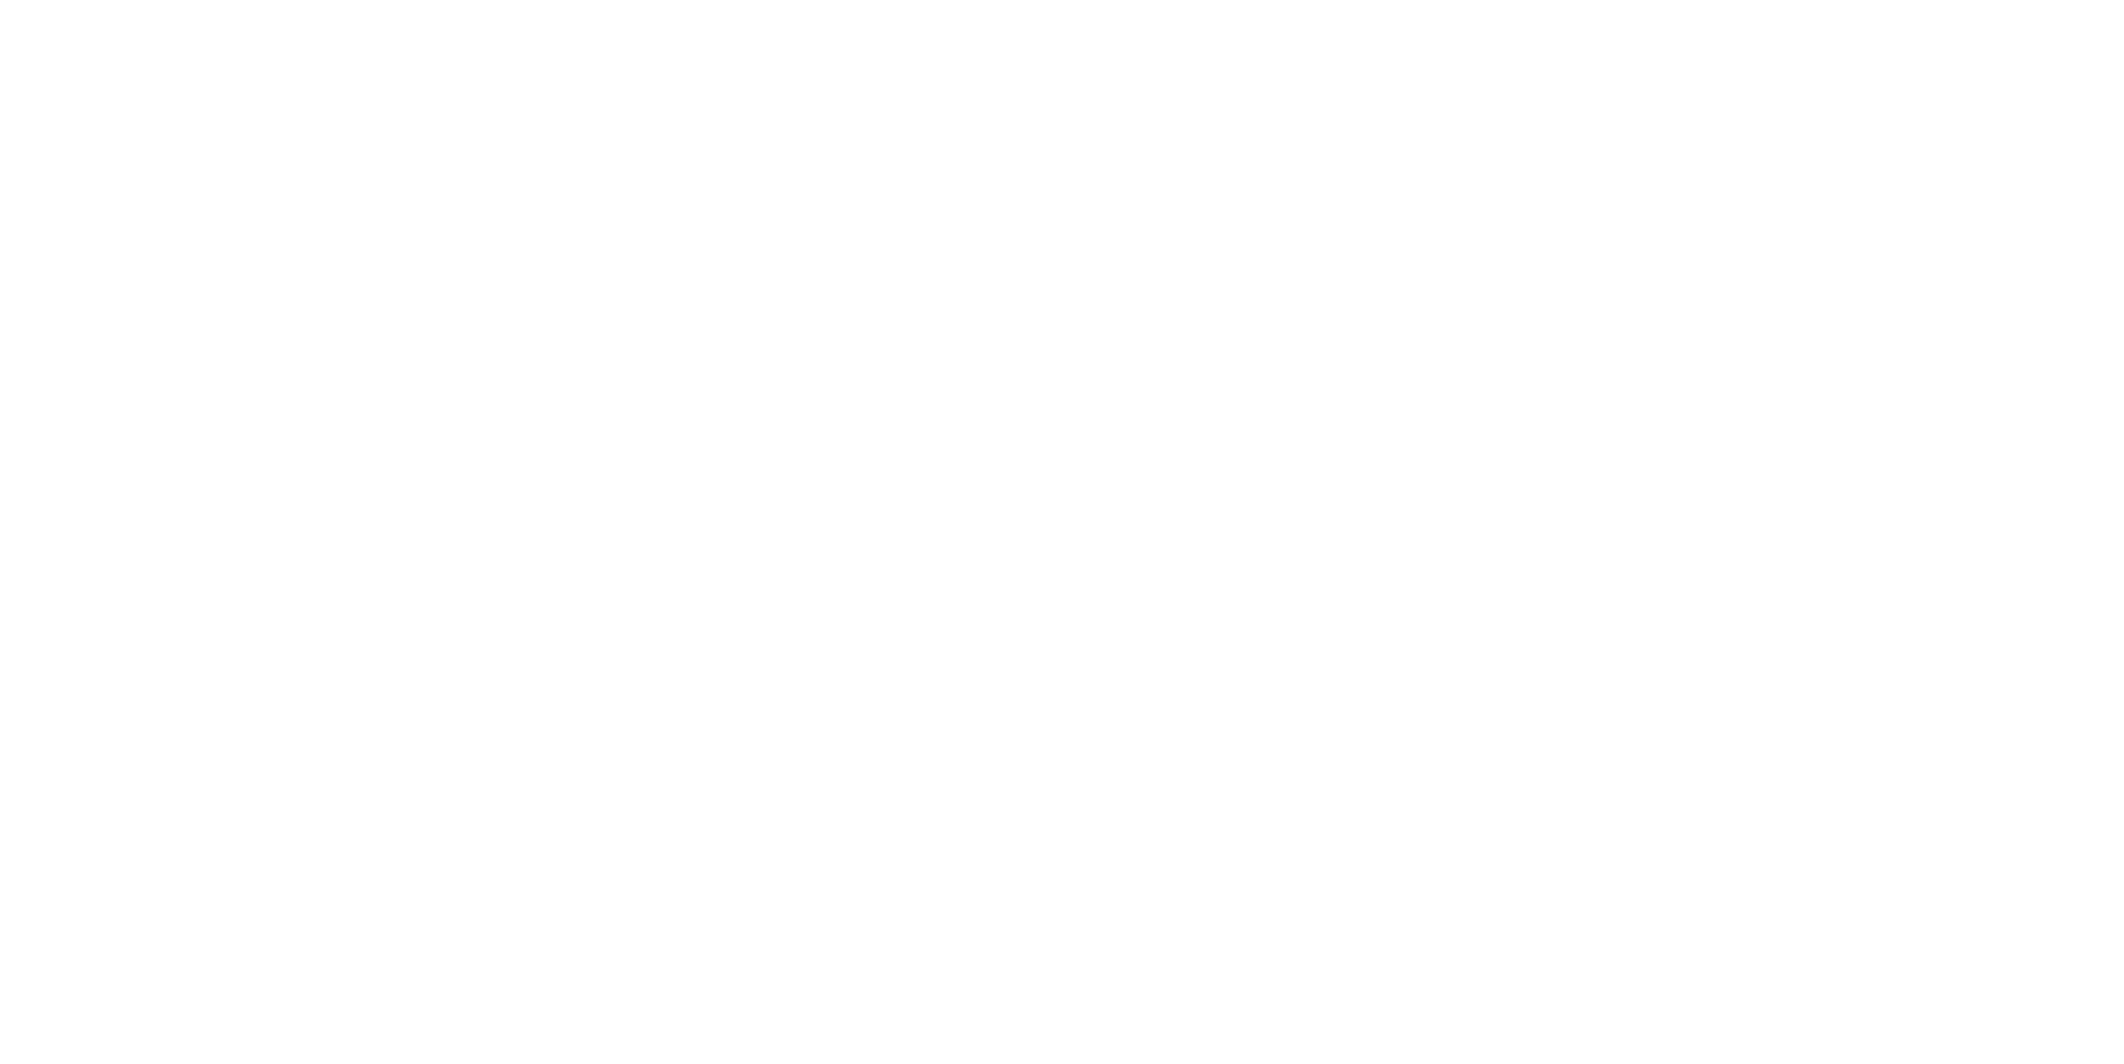 Wilson Mold & Machine